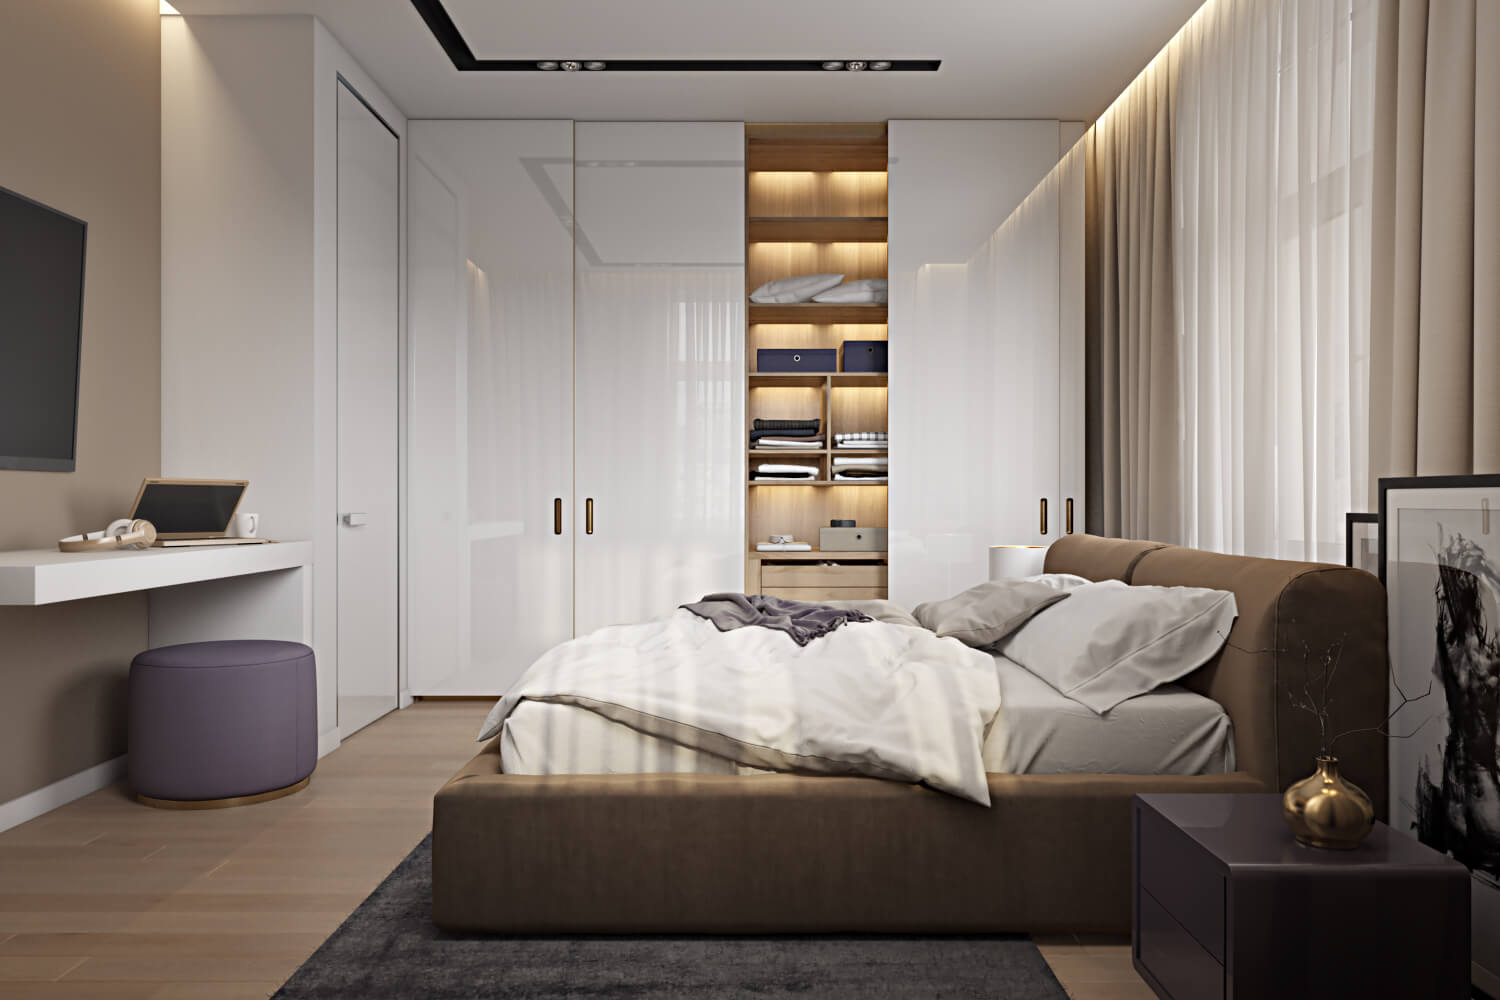 Impossible Angle 3D Render of a Bedroom